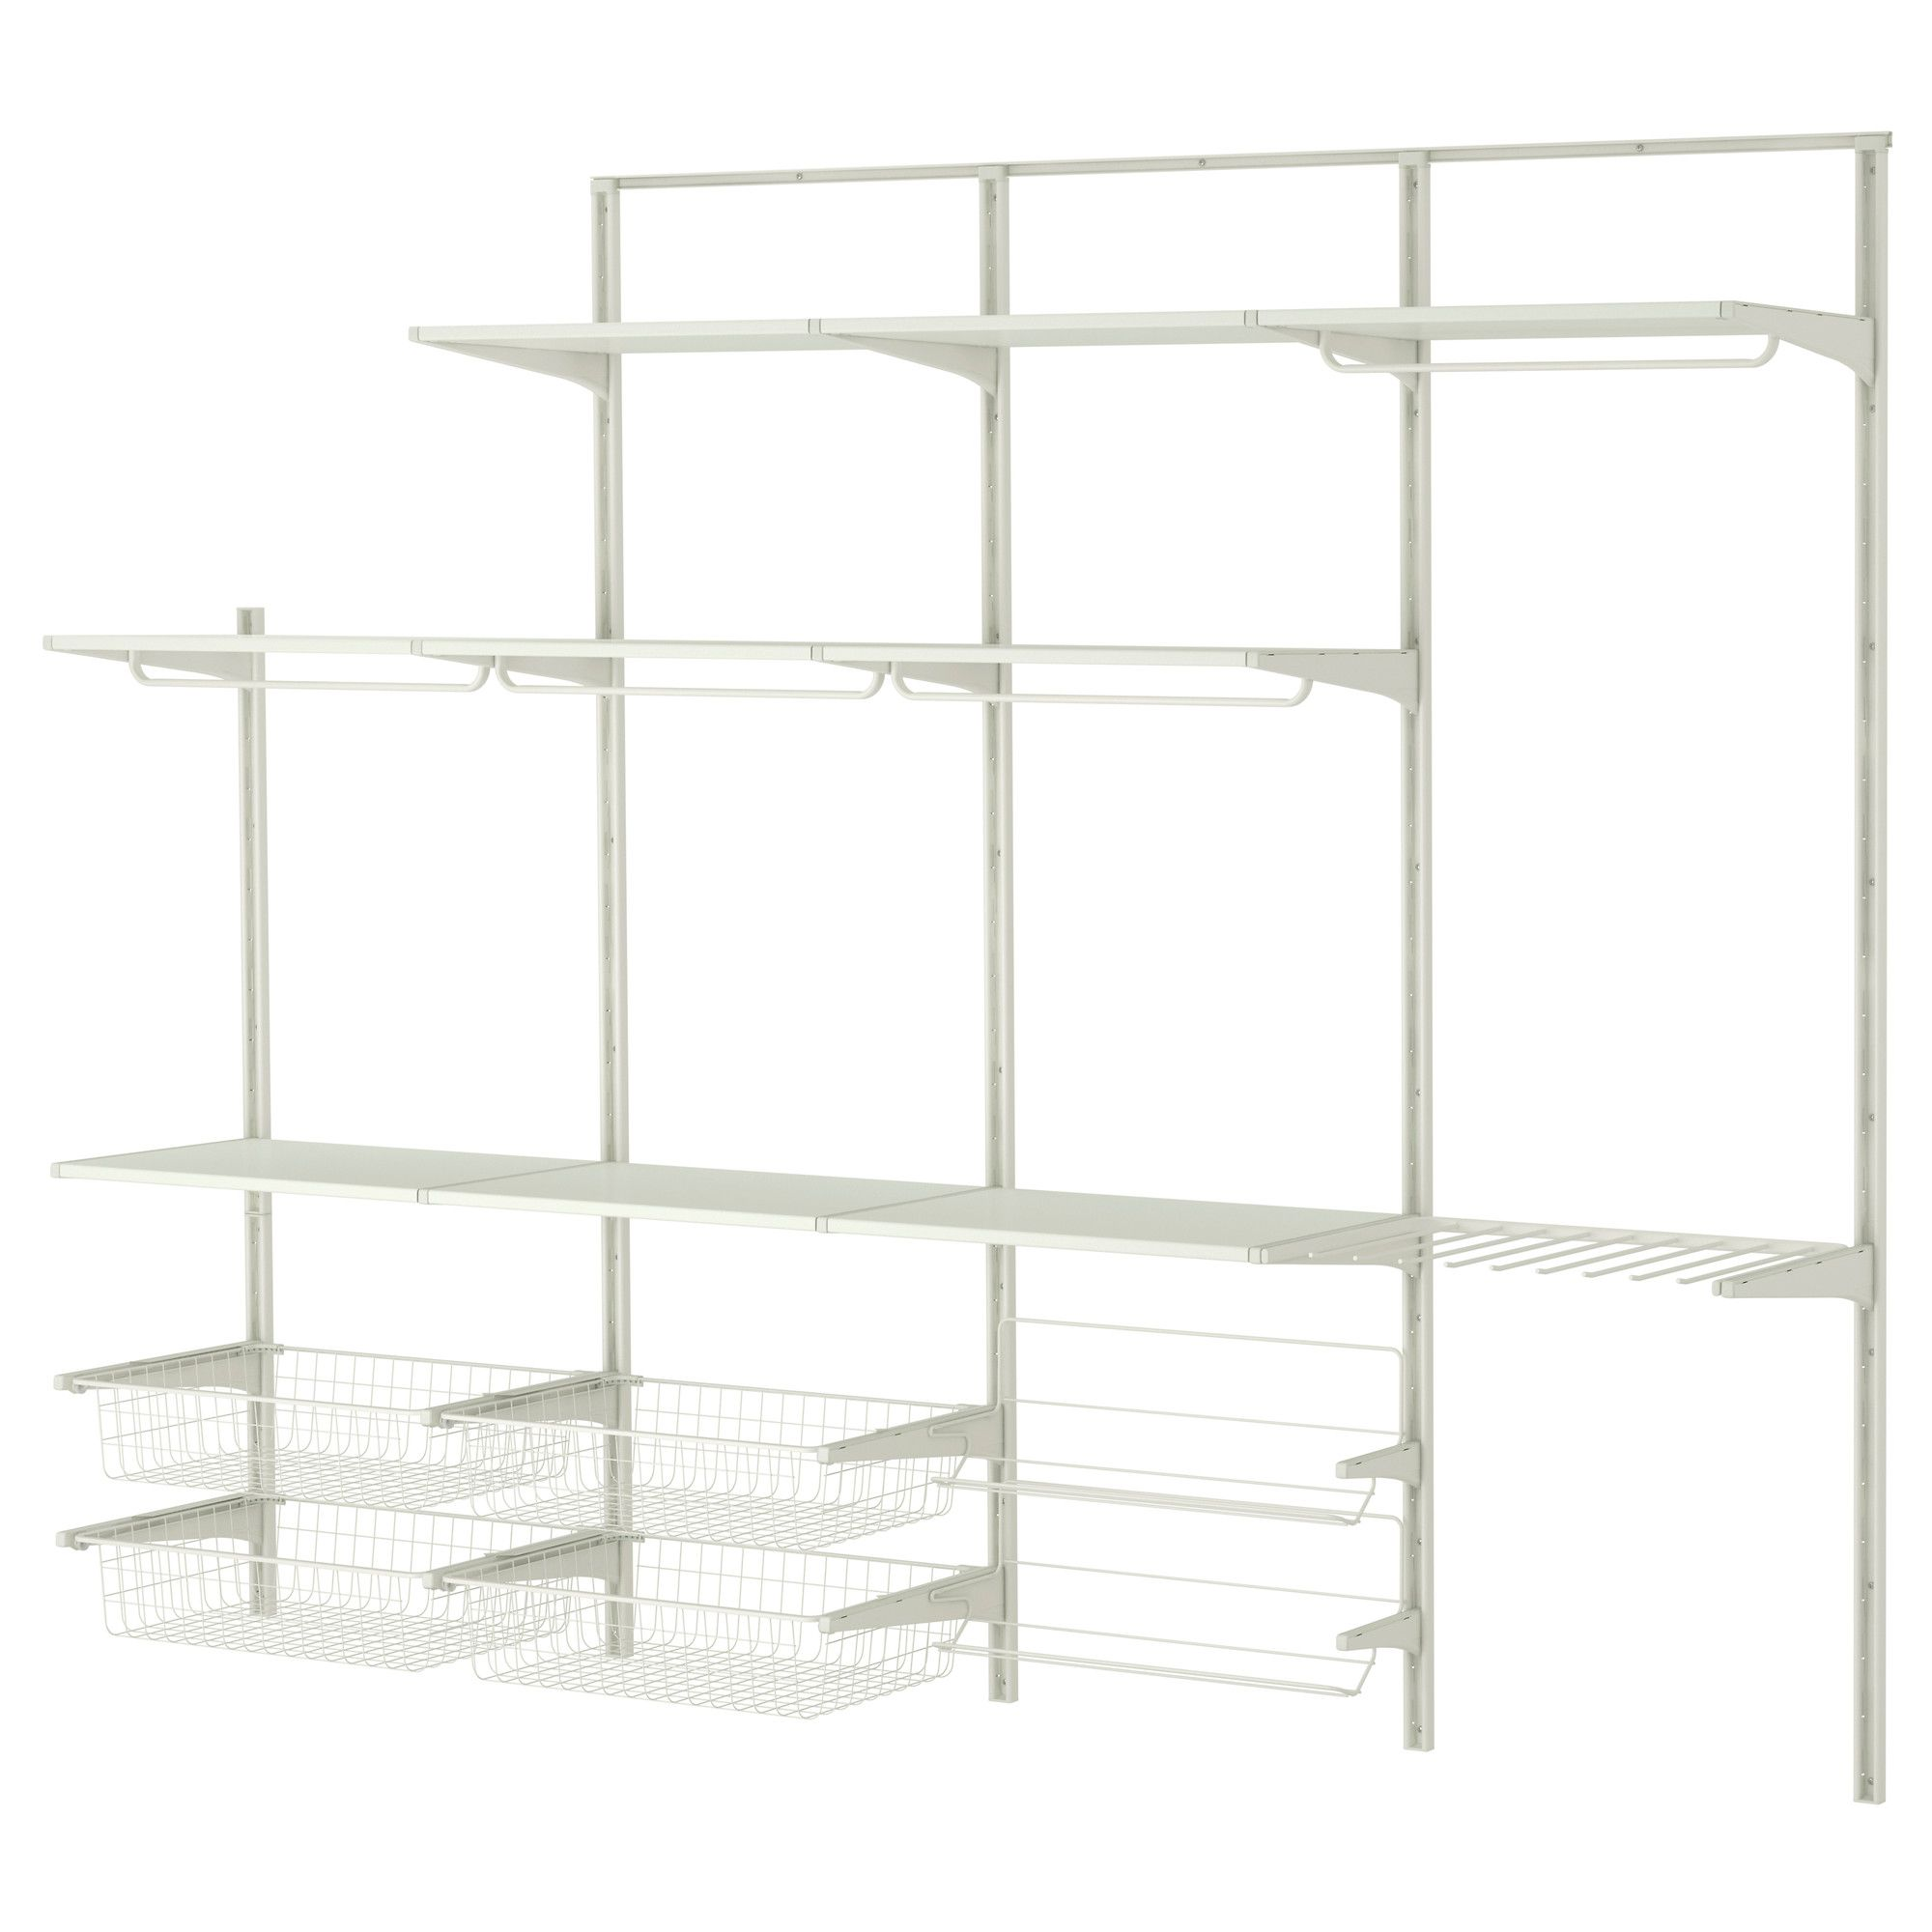 algot wall upright rod shoe organizer ikea bedrooms pinterest shoes organizer and walls. Black Bedroom Furniture Sets. Home Design Ideas